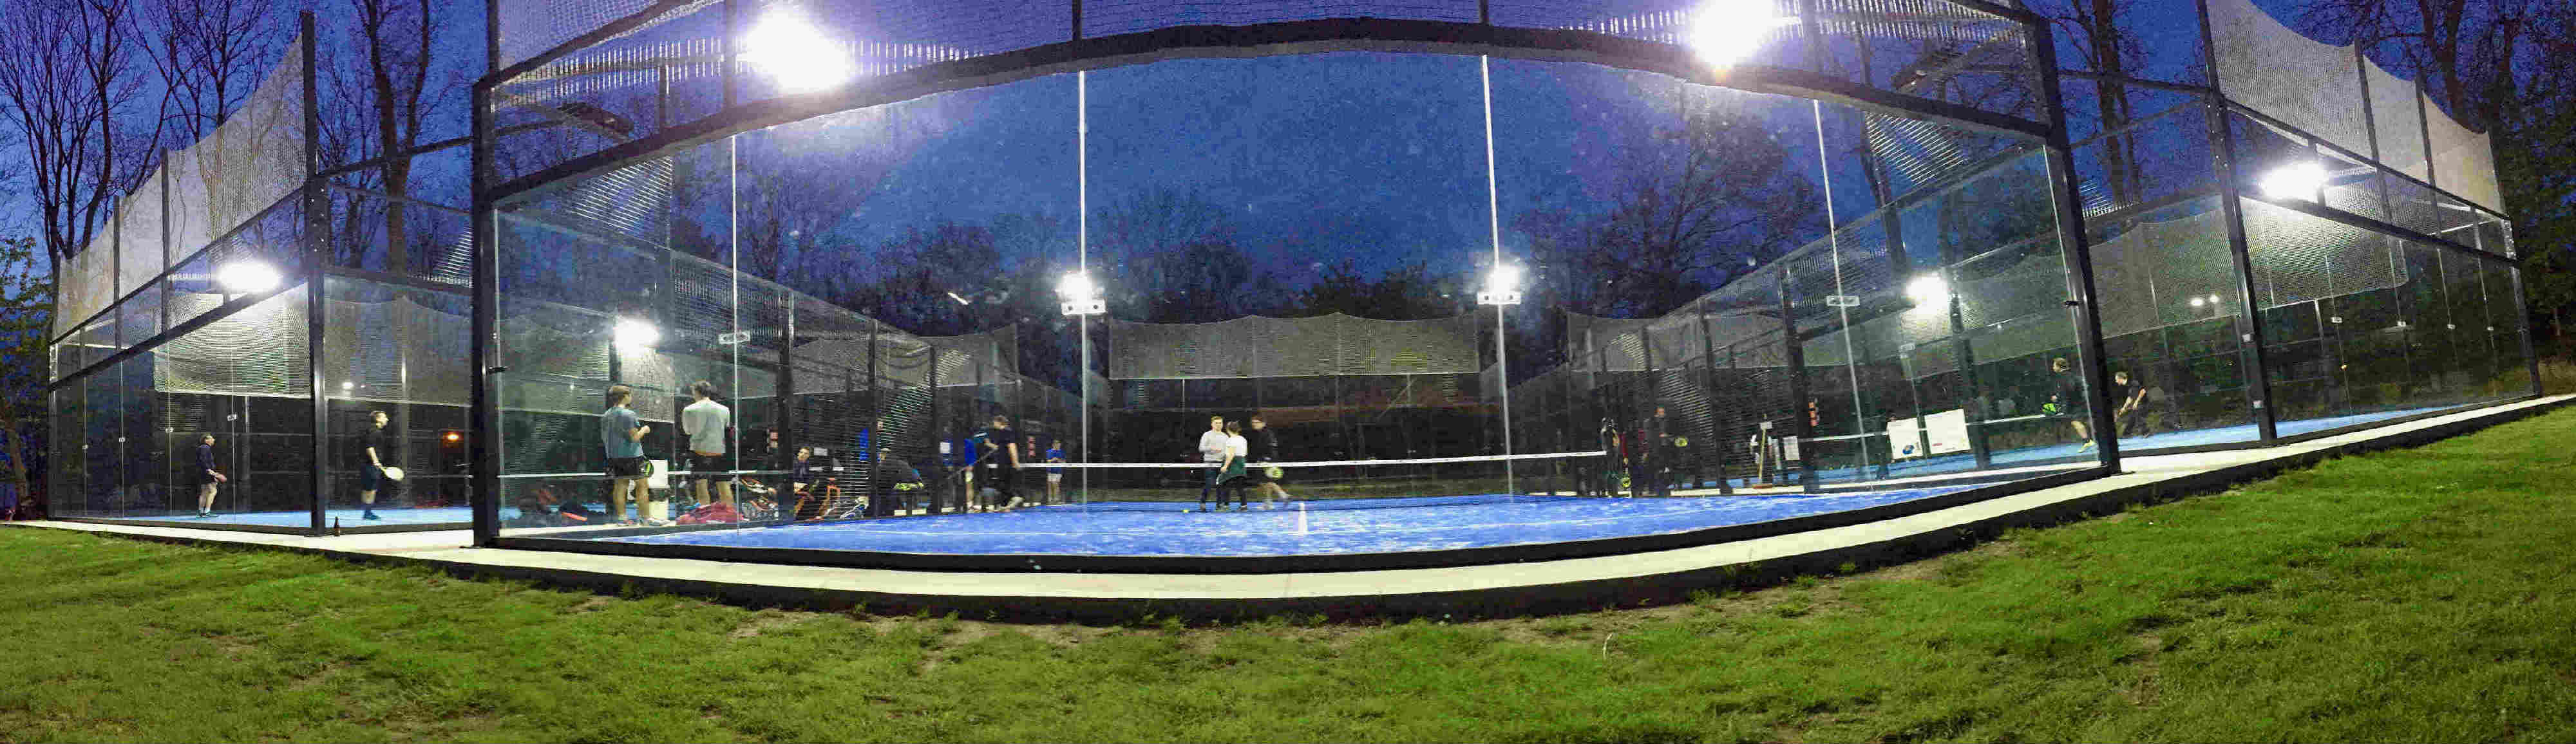 NEU IN EUPEN: PADEL-TENNIS